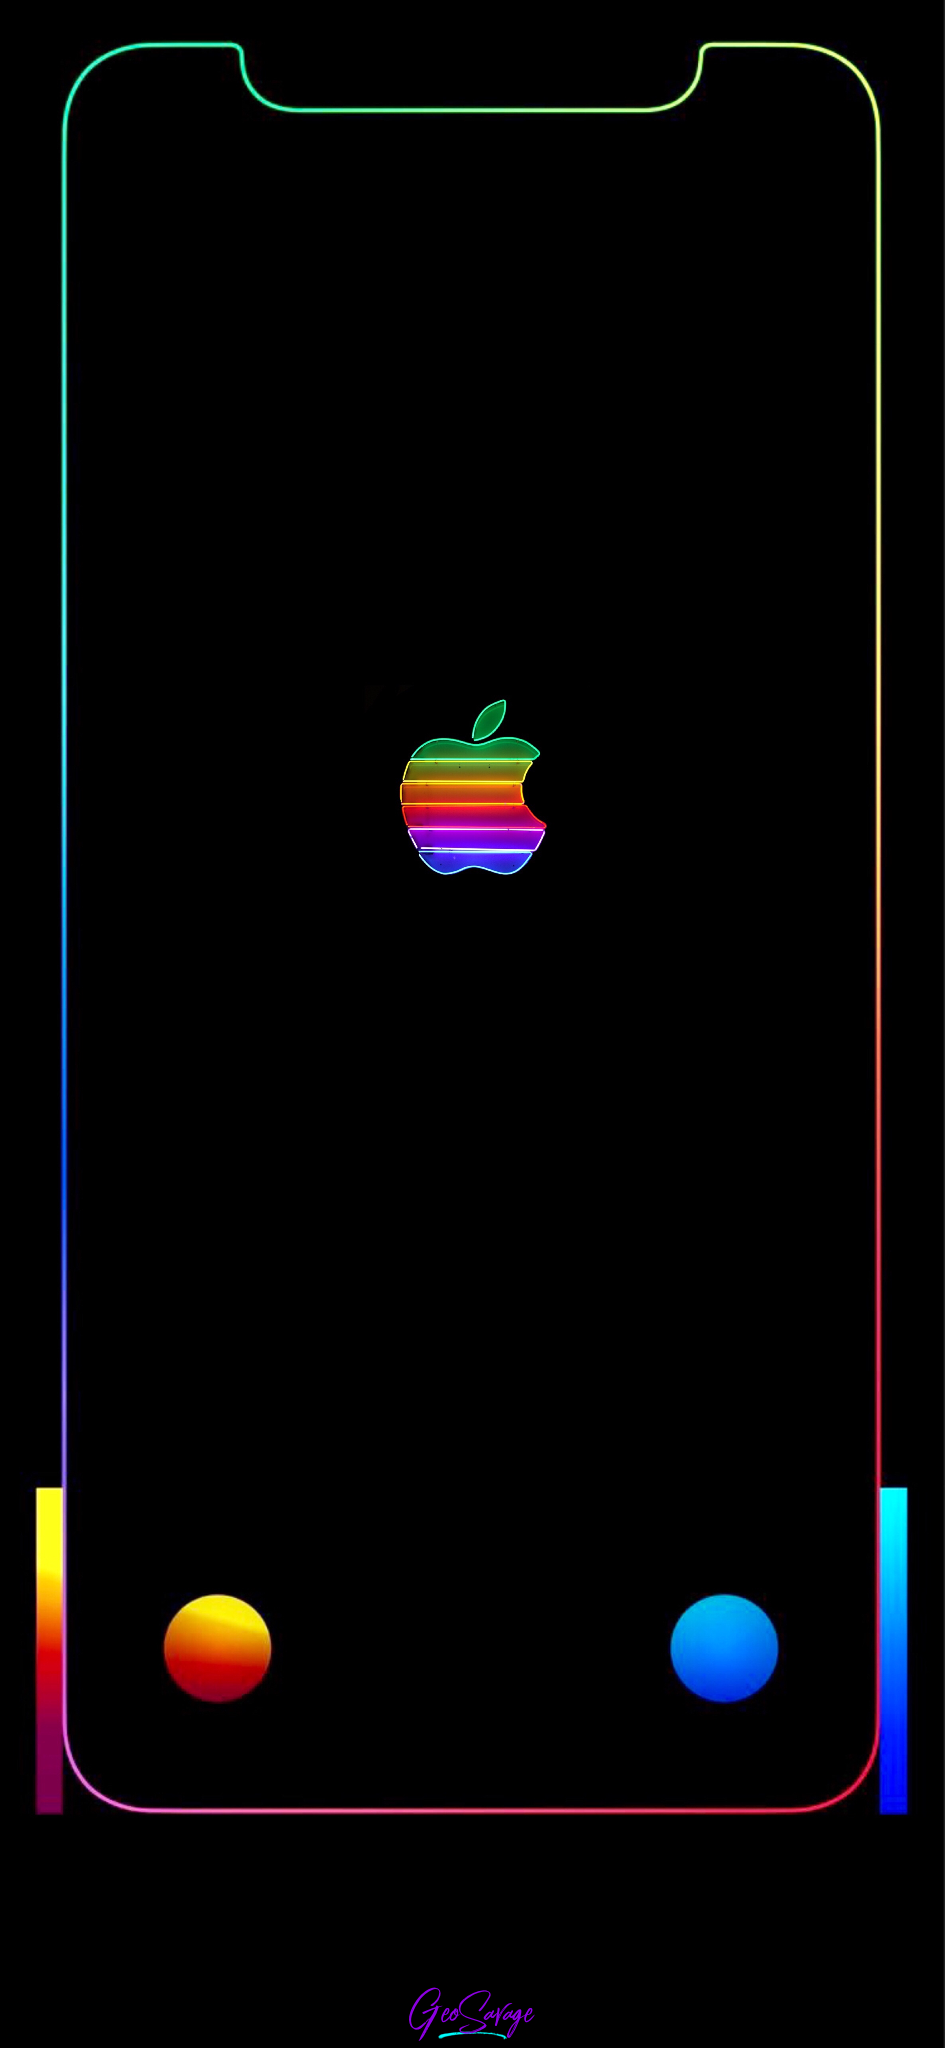 Vintage Iphone 11 Wallpapers Wallpaper Cave